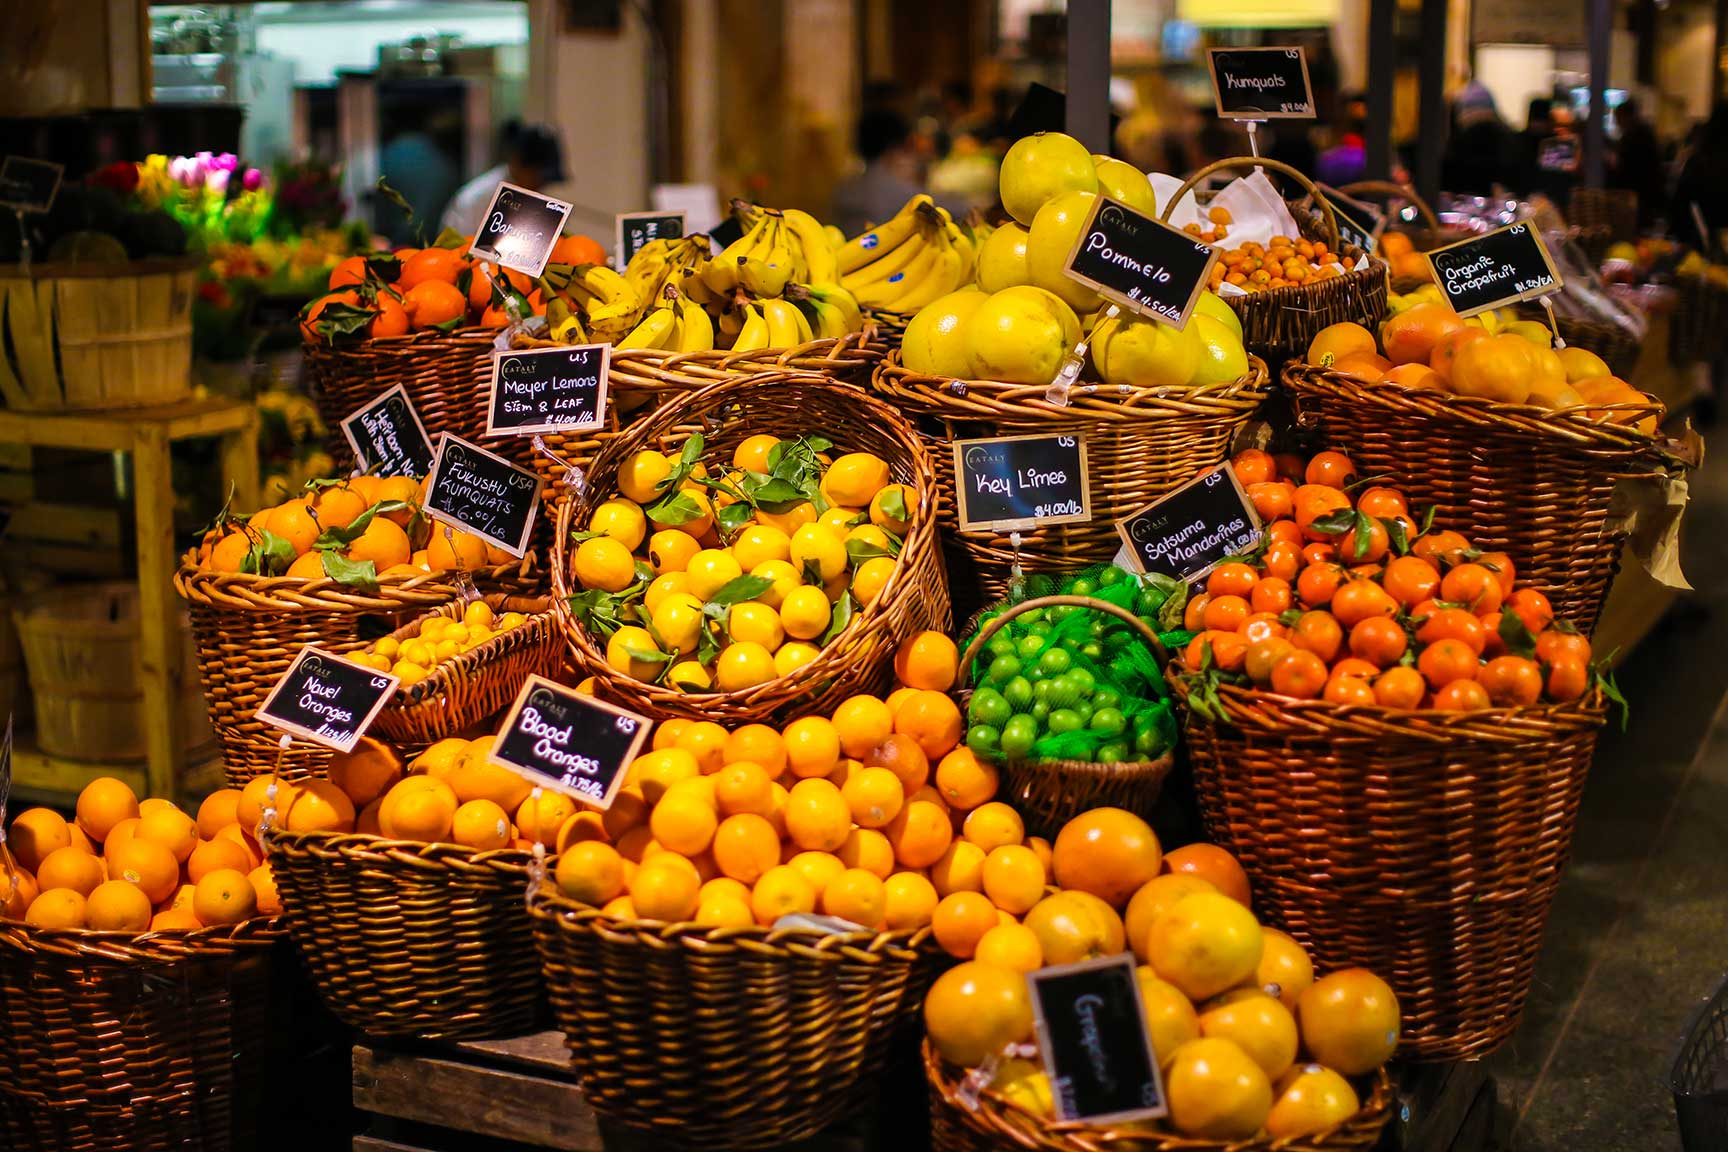 Colorful fruits at Eataly